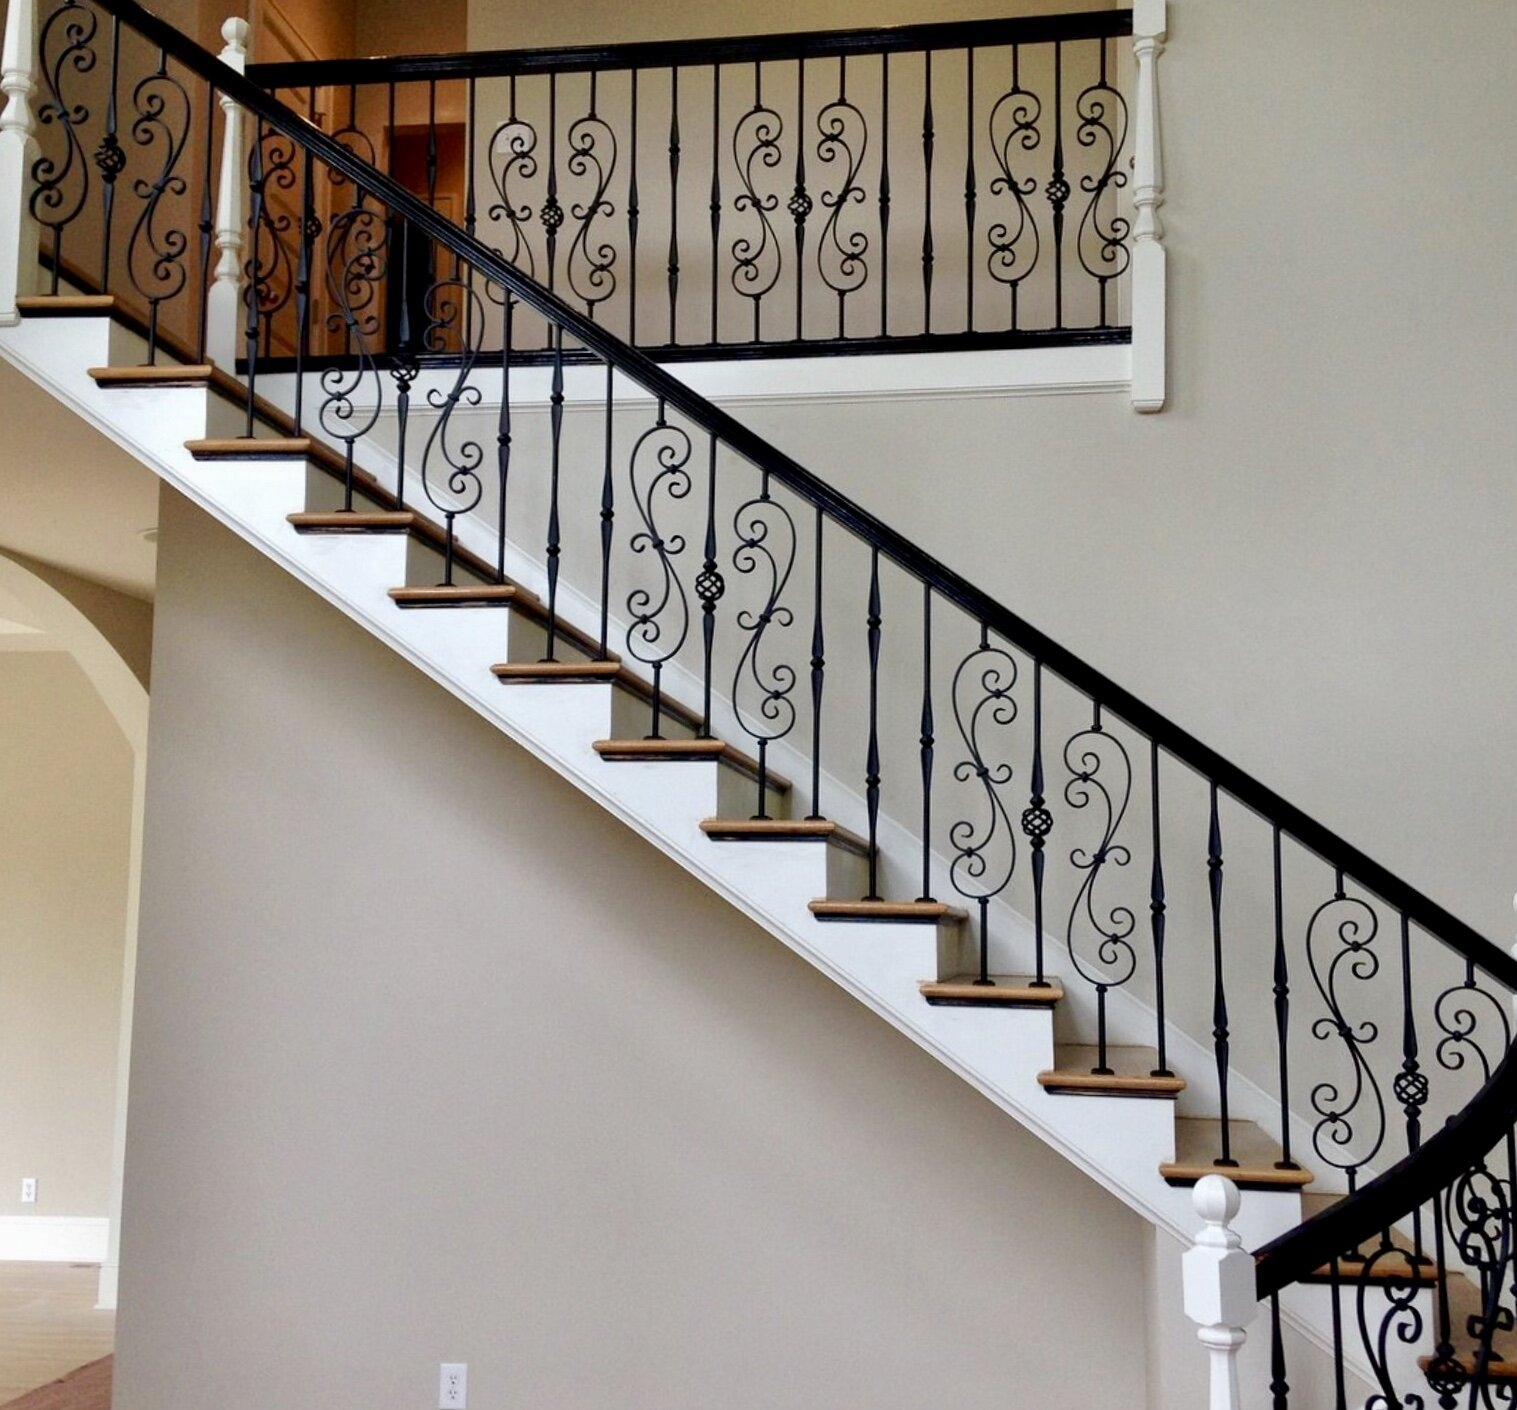 Wrought Iron Balusters Charlotte Nc Stair Railings | Iron Railing With Wood Handrail | Stair Systems | Stair Parts | Metal | Stair | Staircase